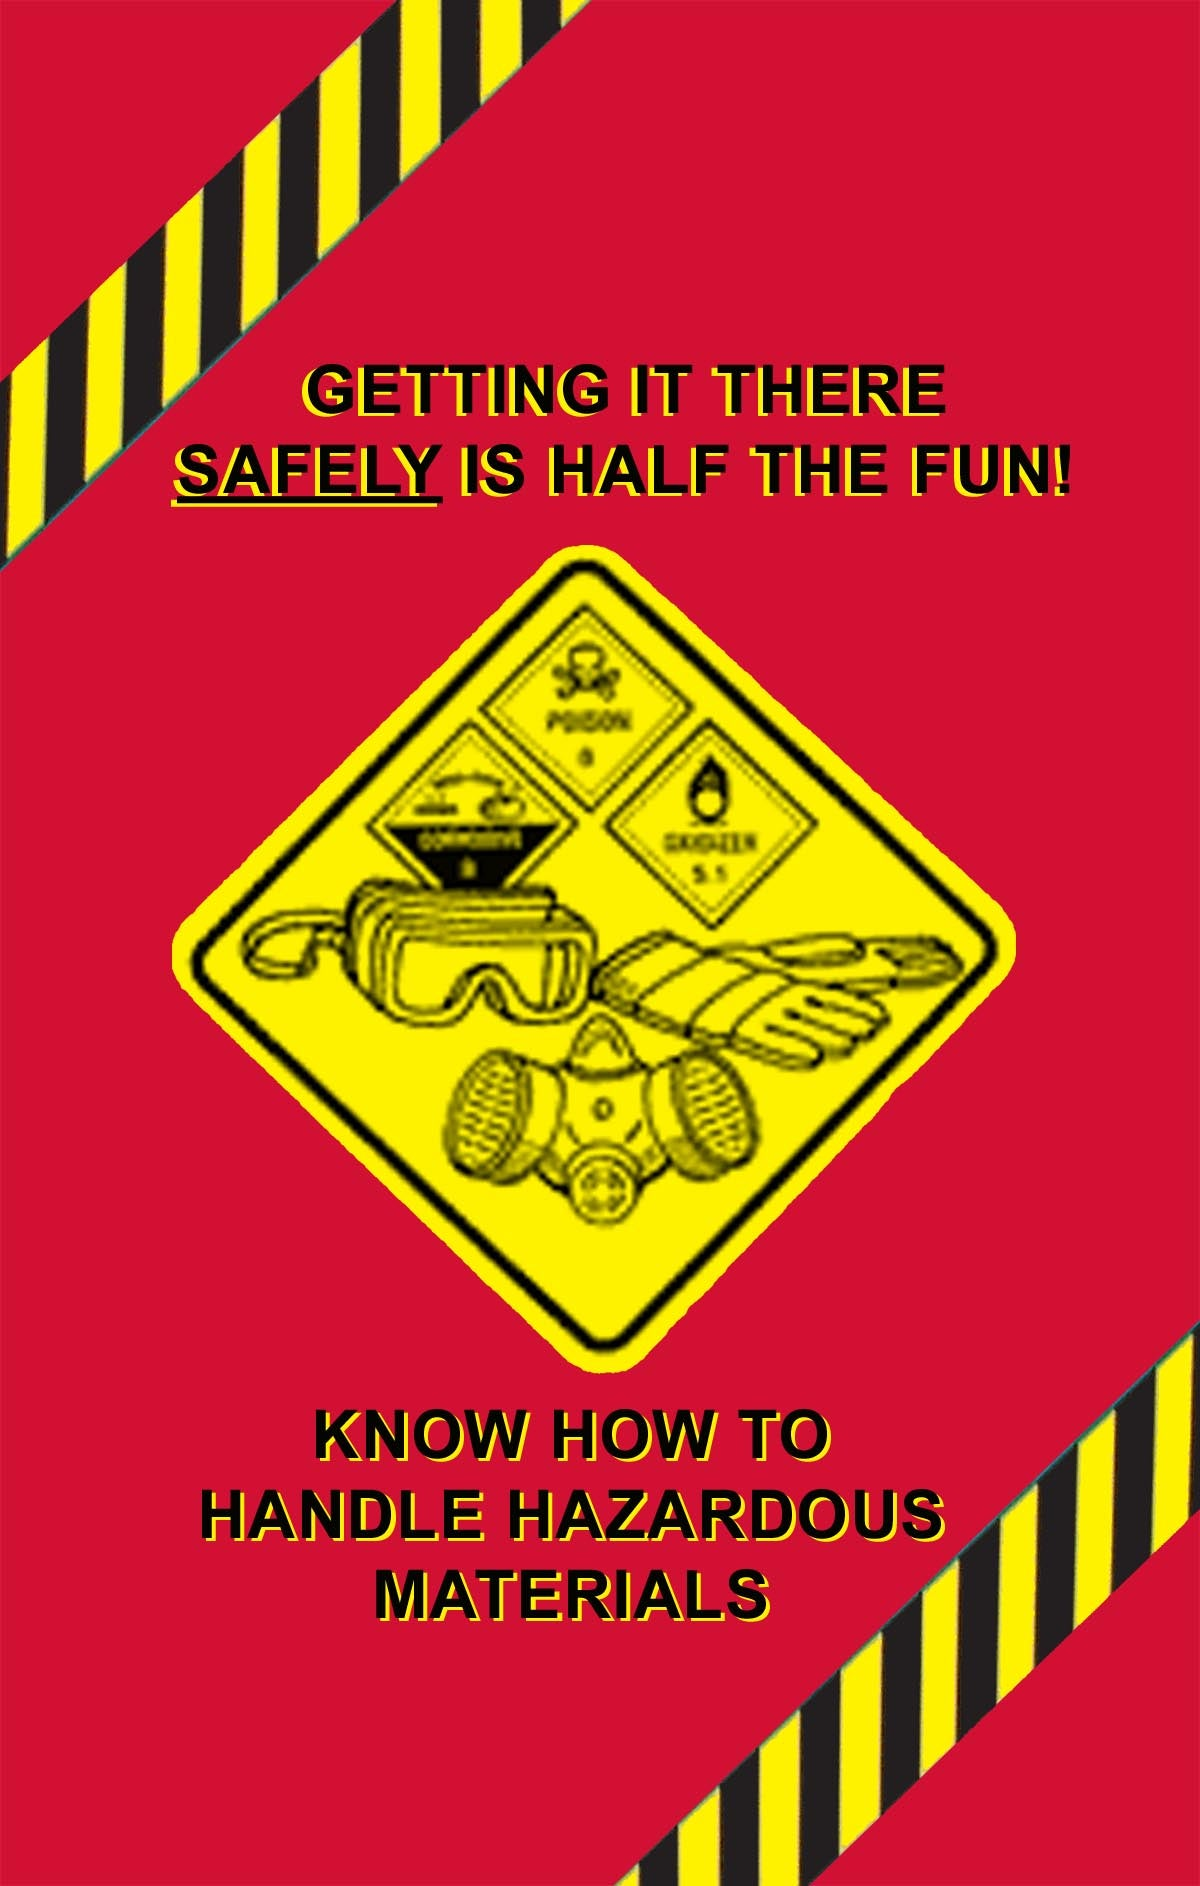 MARCOM DOT HAZMAT Safety Training Poster